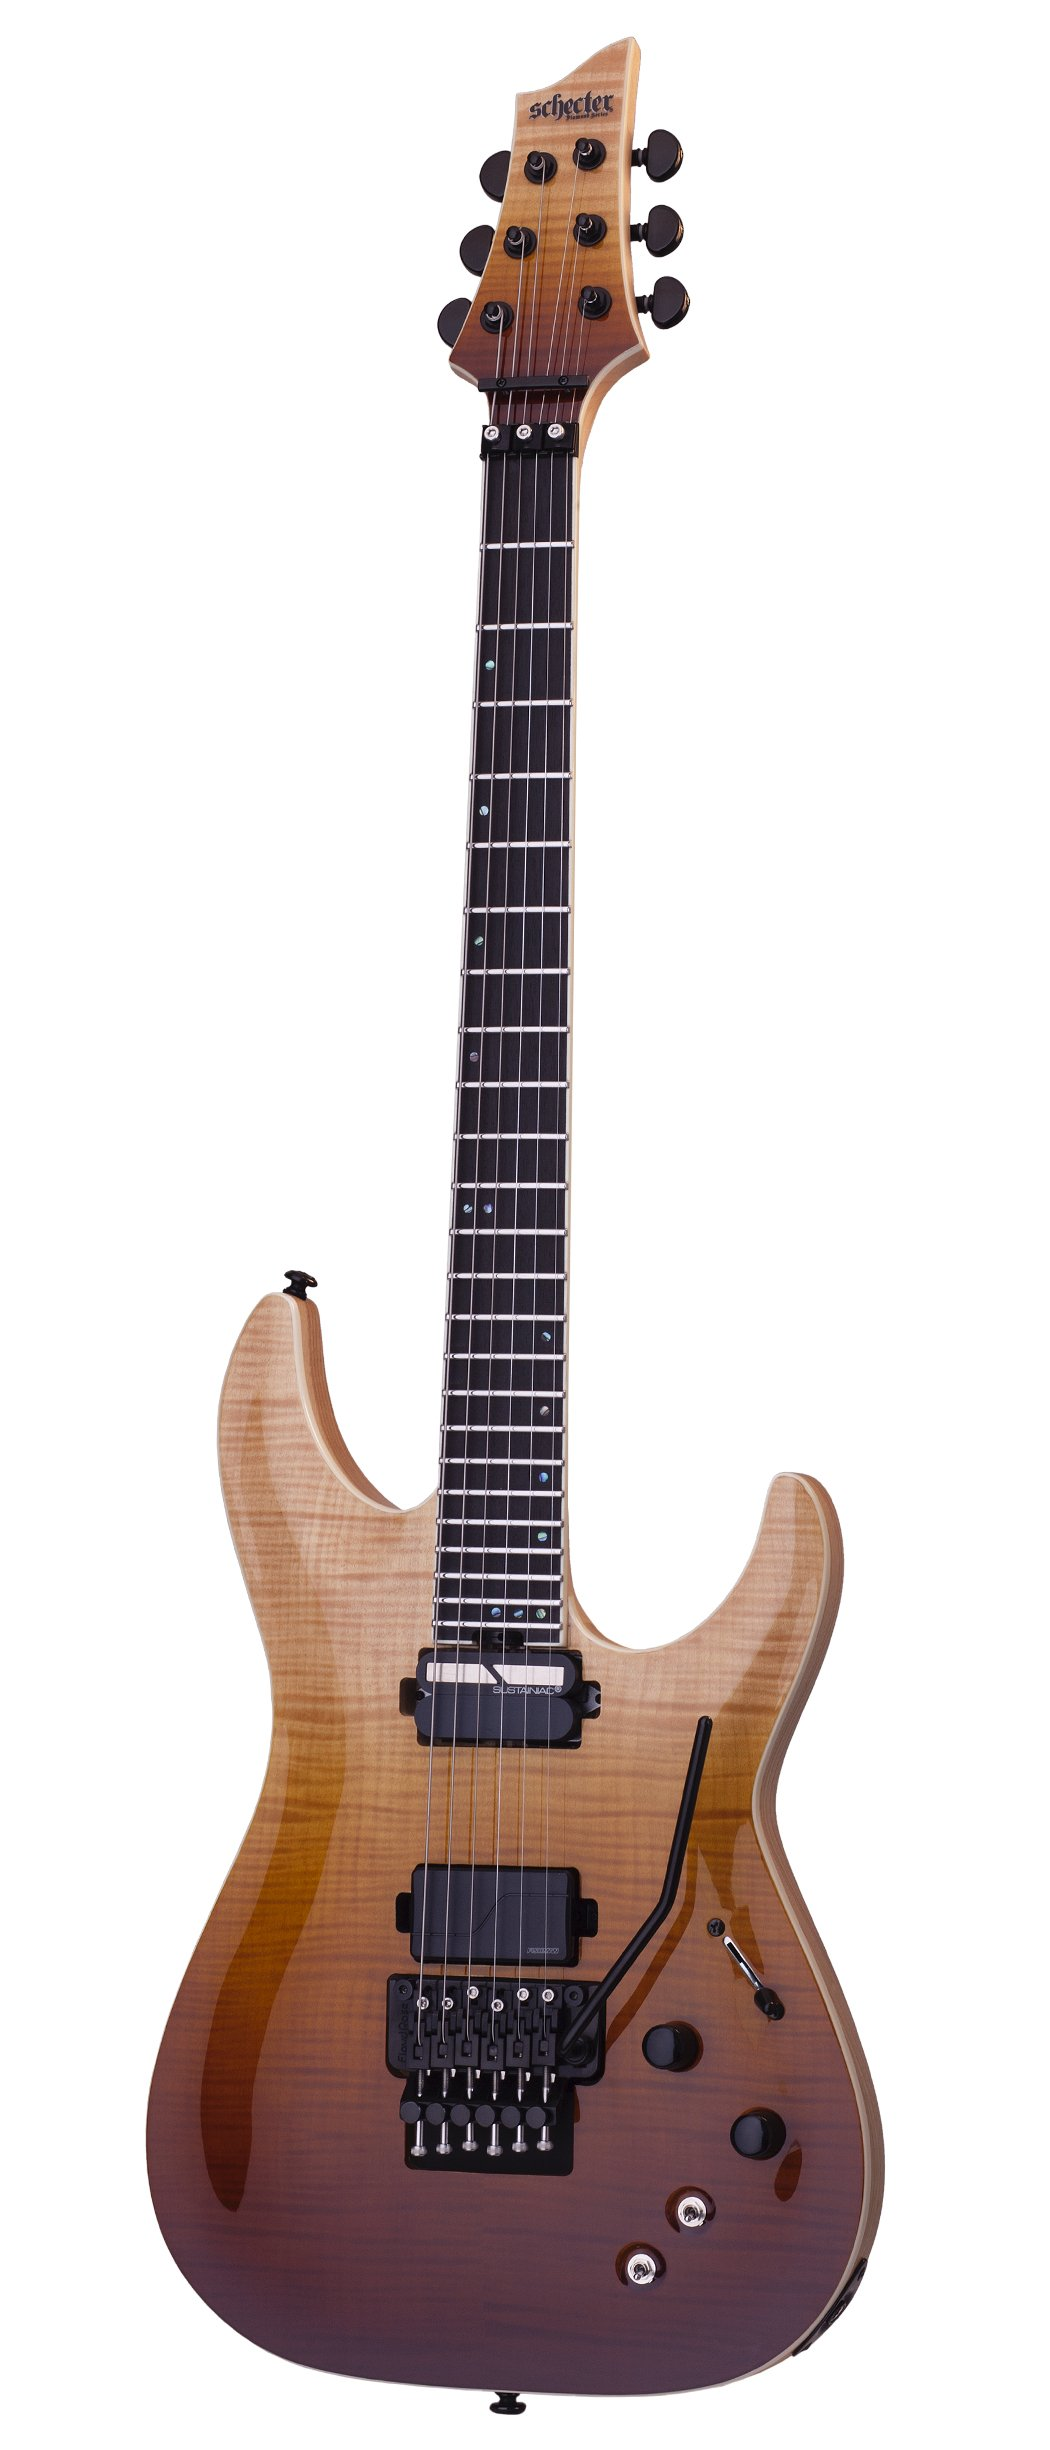 Cheap Schecter 6 String Solid-Body Electric Guitar Antique Fade Burst (1358) Black Friday & Cyber Monday 2019